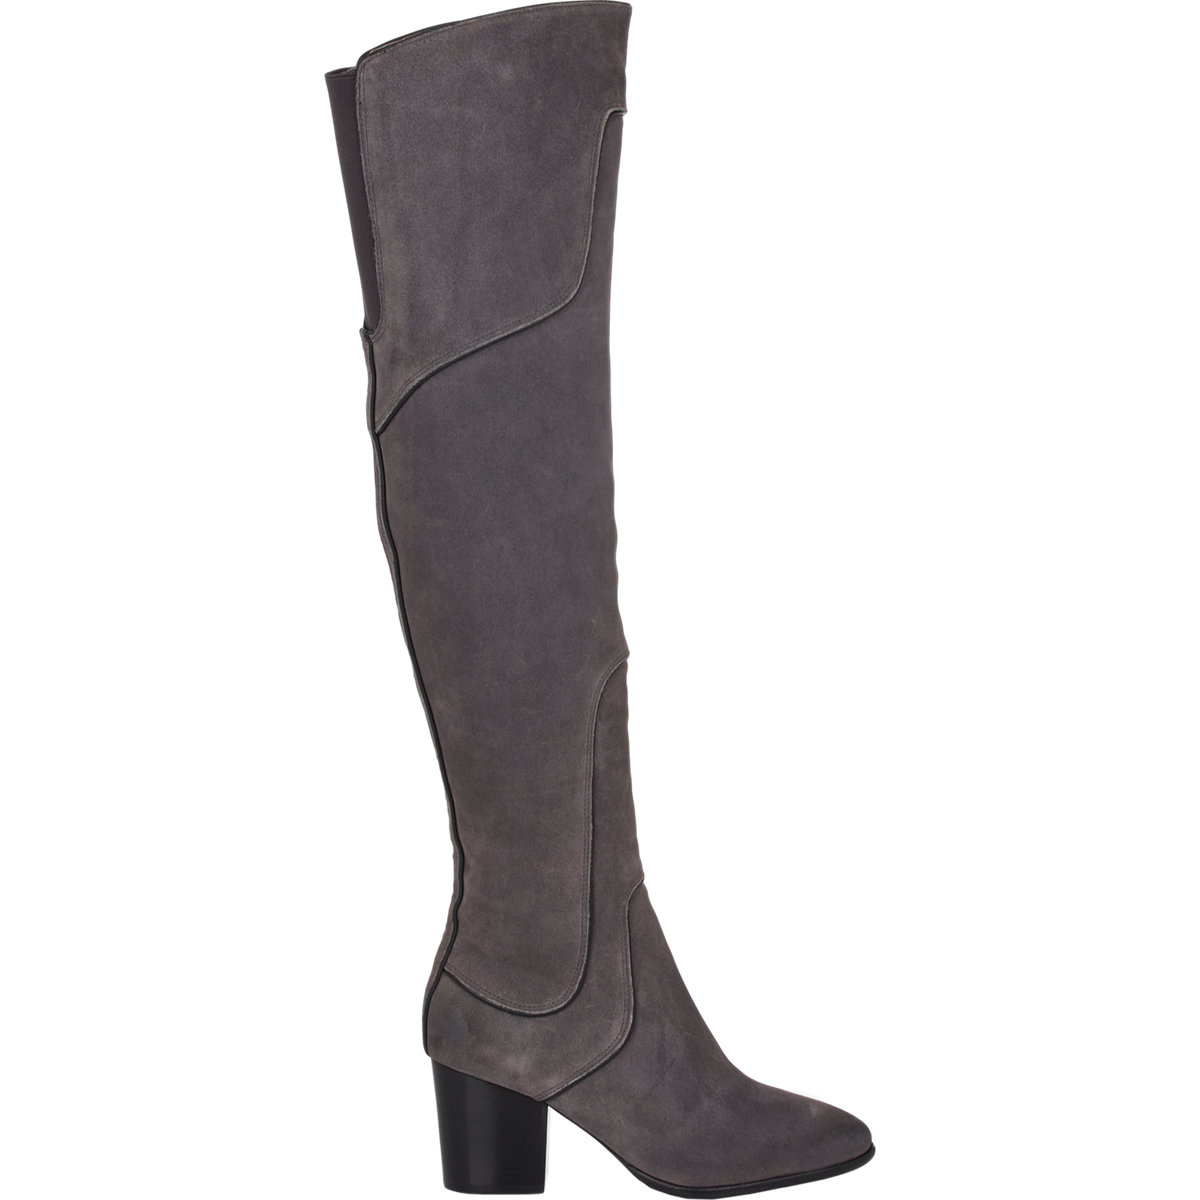 34e33b9dc2e Lyst - Rebecca Minkoff Blessing Over-The-Knee Boots in Gray